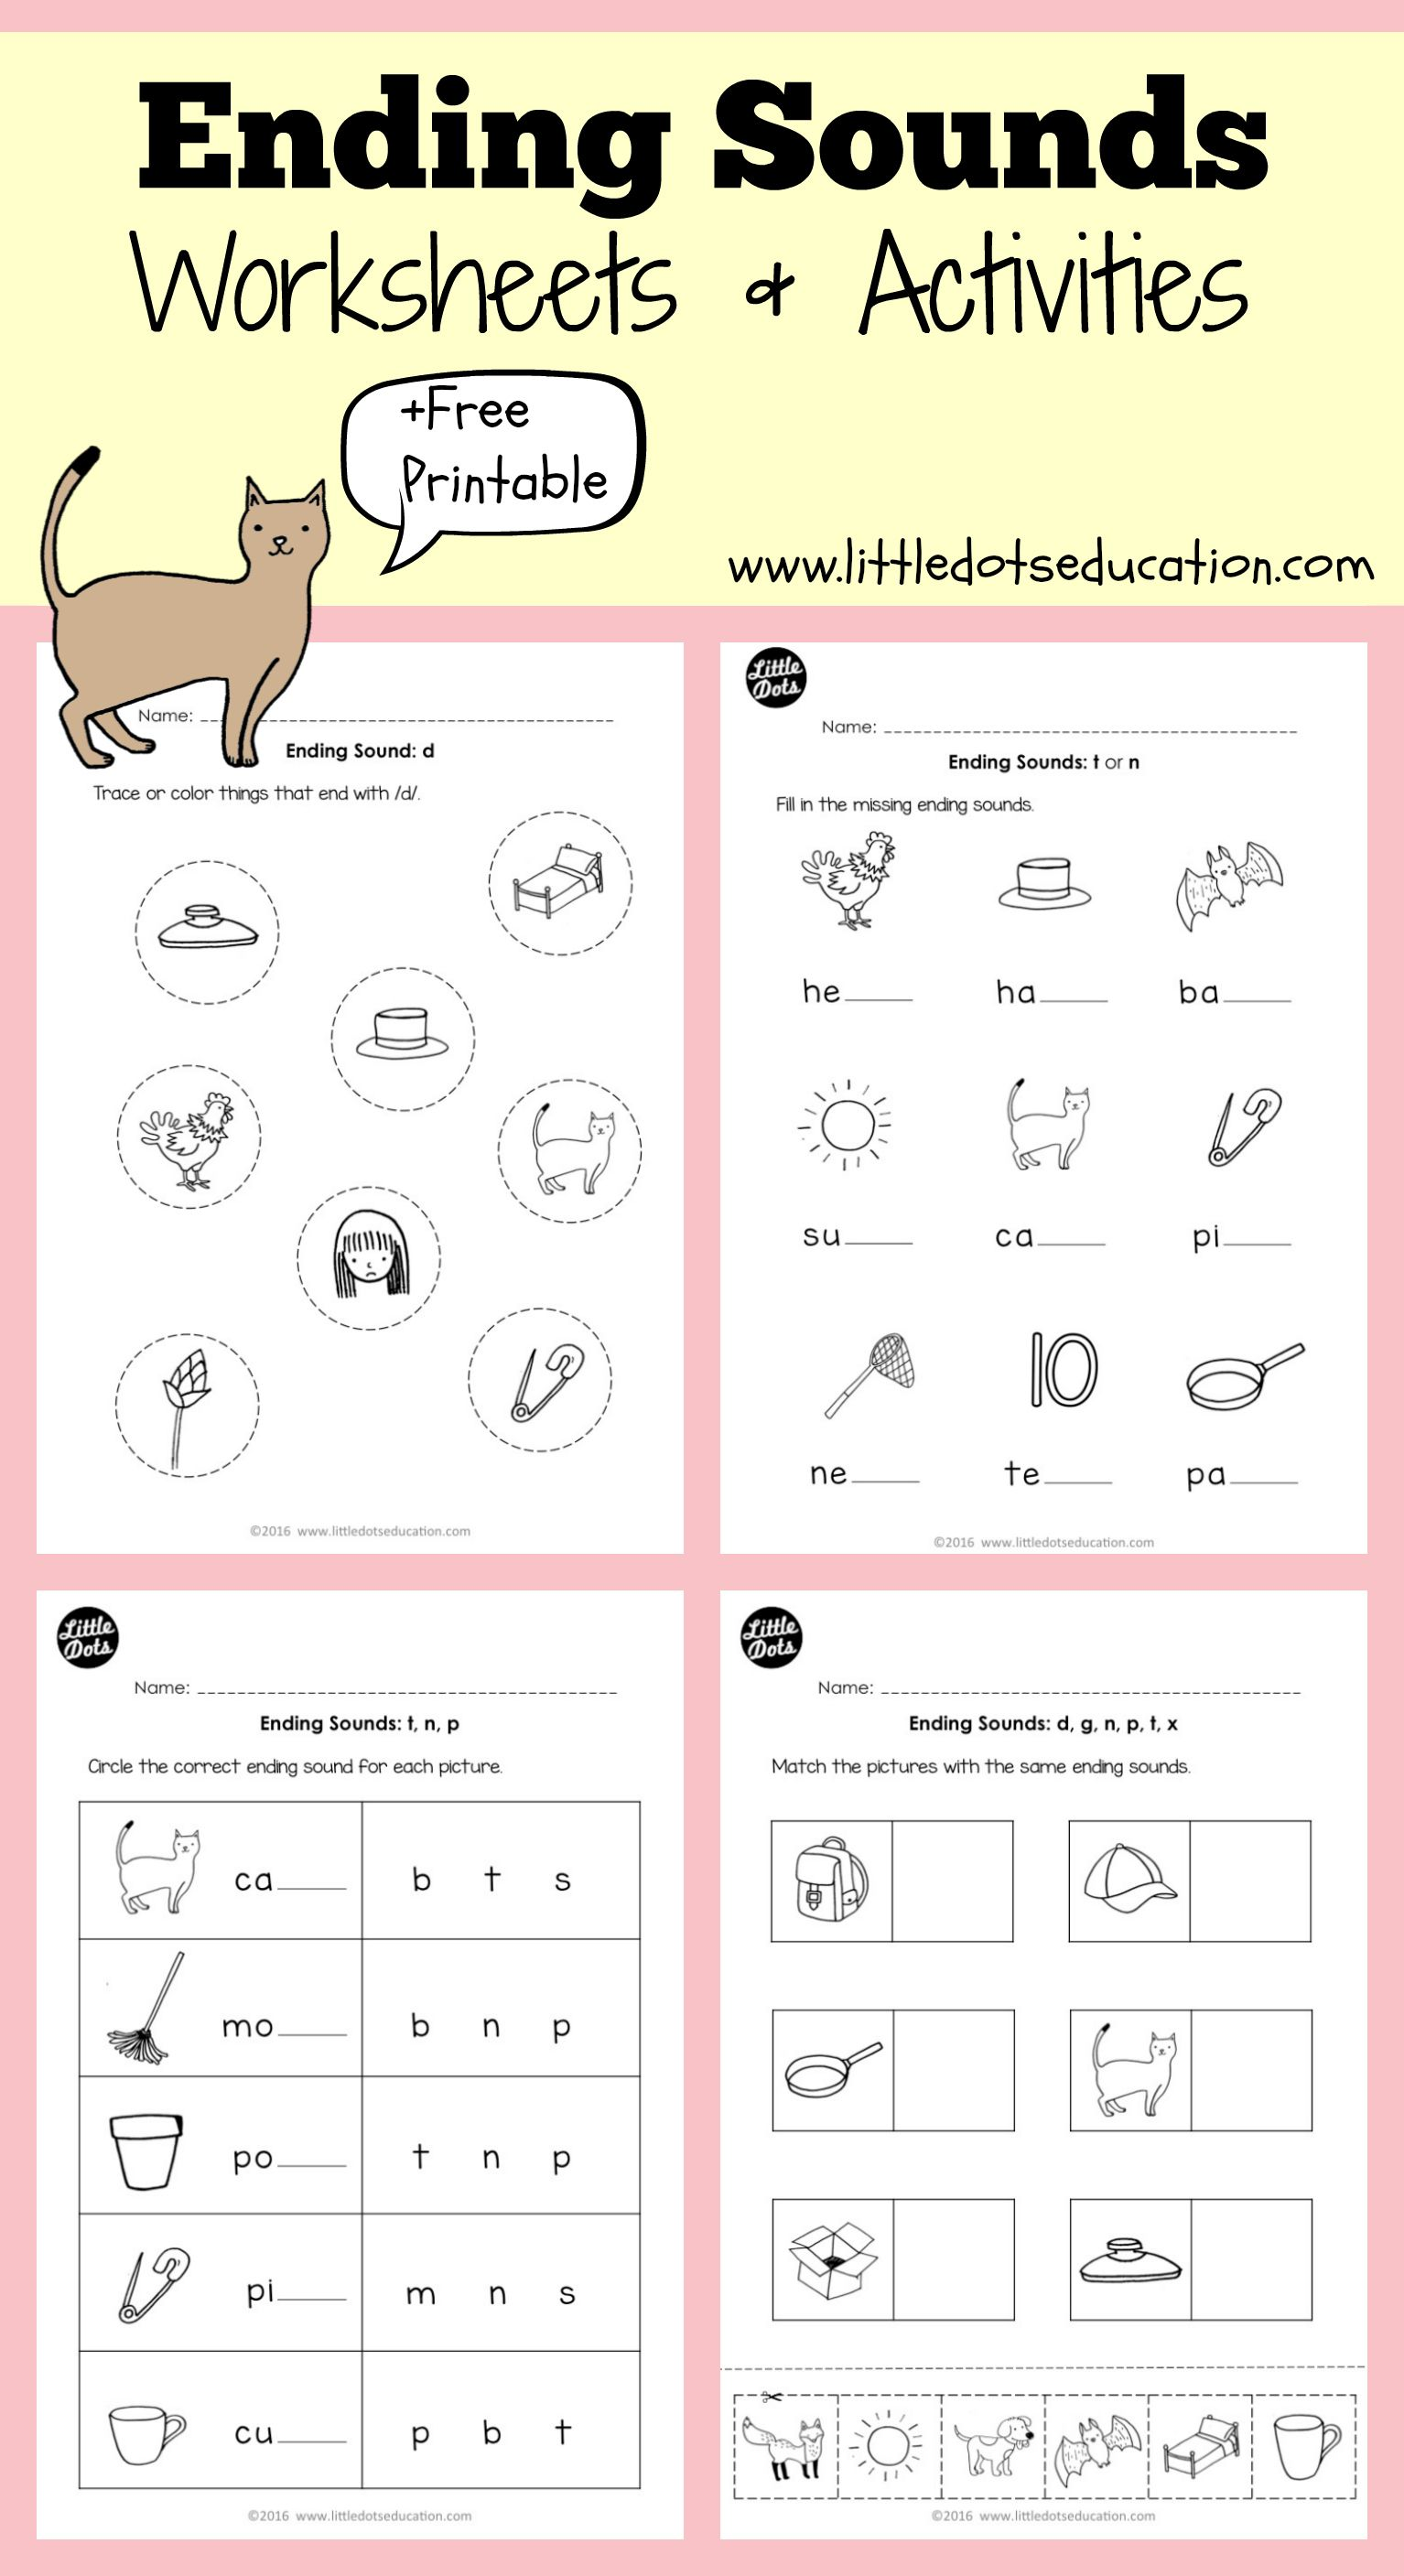 Download ending sounds worksheets and activities for preschool or